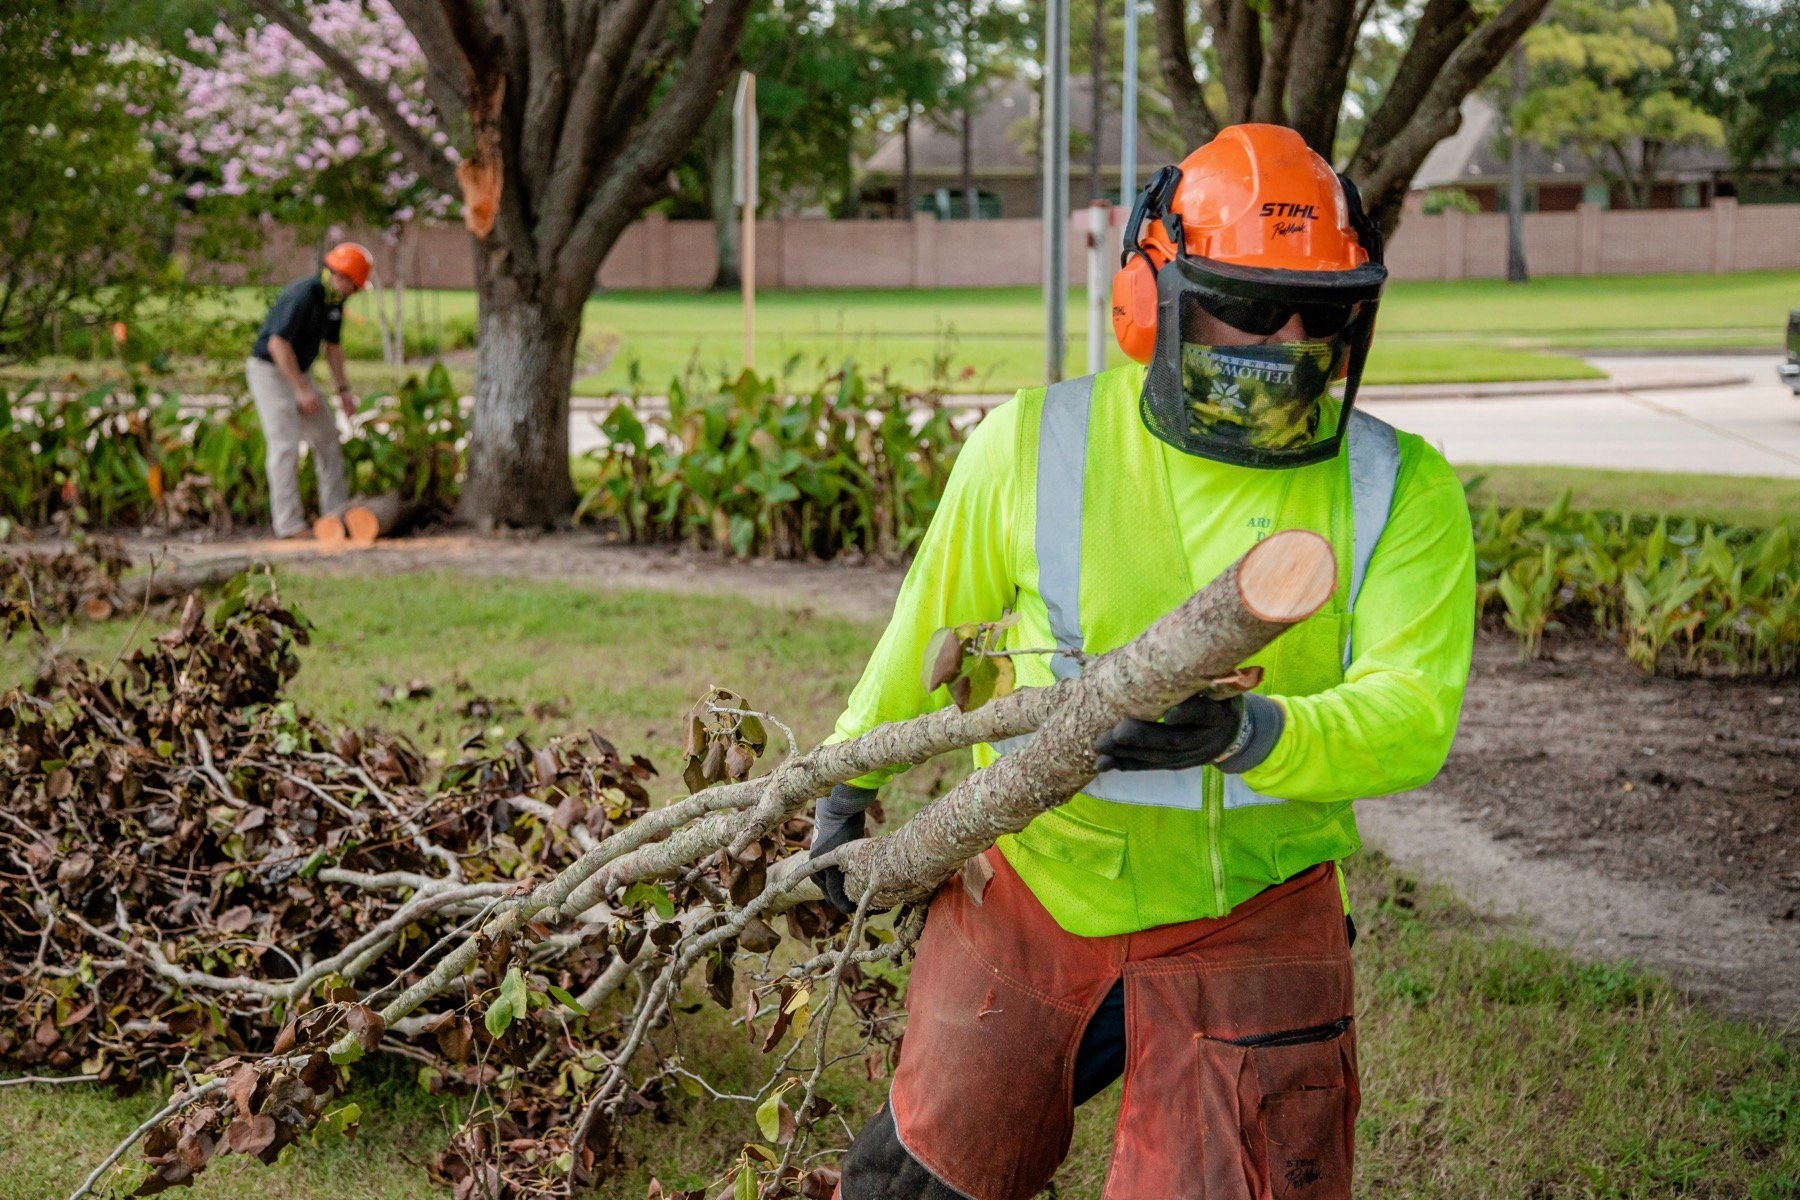 Tree care team pruning and removing tree limbs